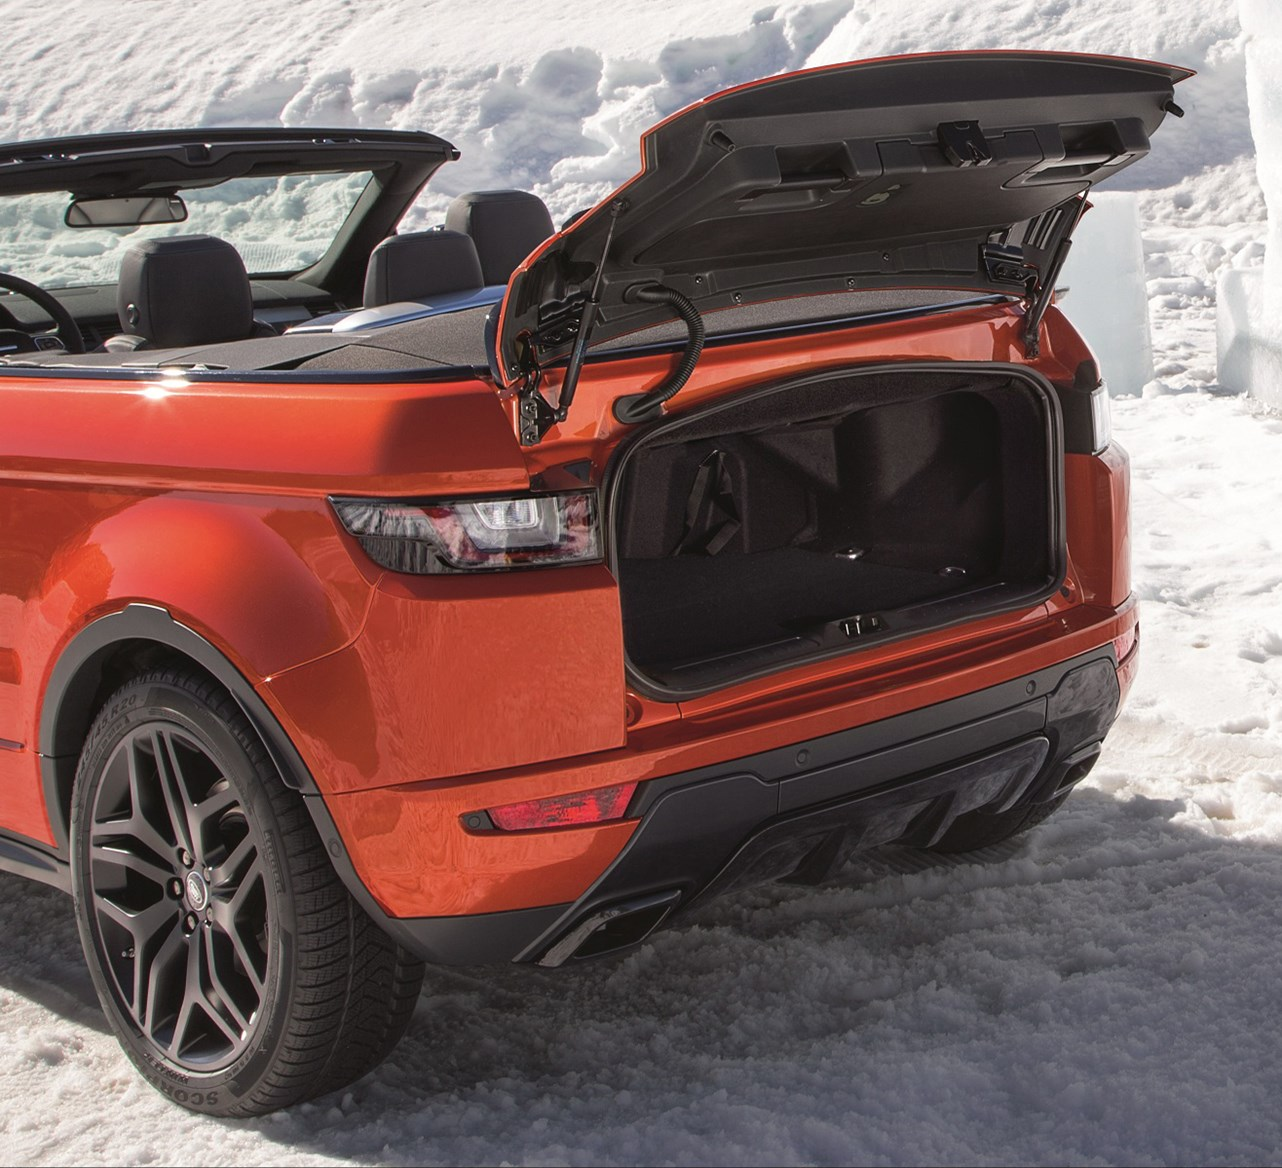 Used 2017 Land Rover Range Rover Sport Sdv6 Hse For Sale: Land Rover Range Rover Evoque Convertible (2016